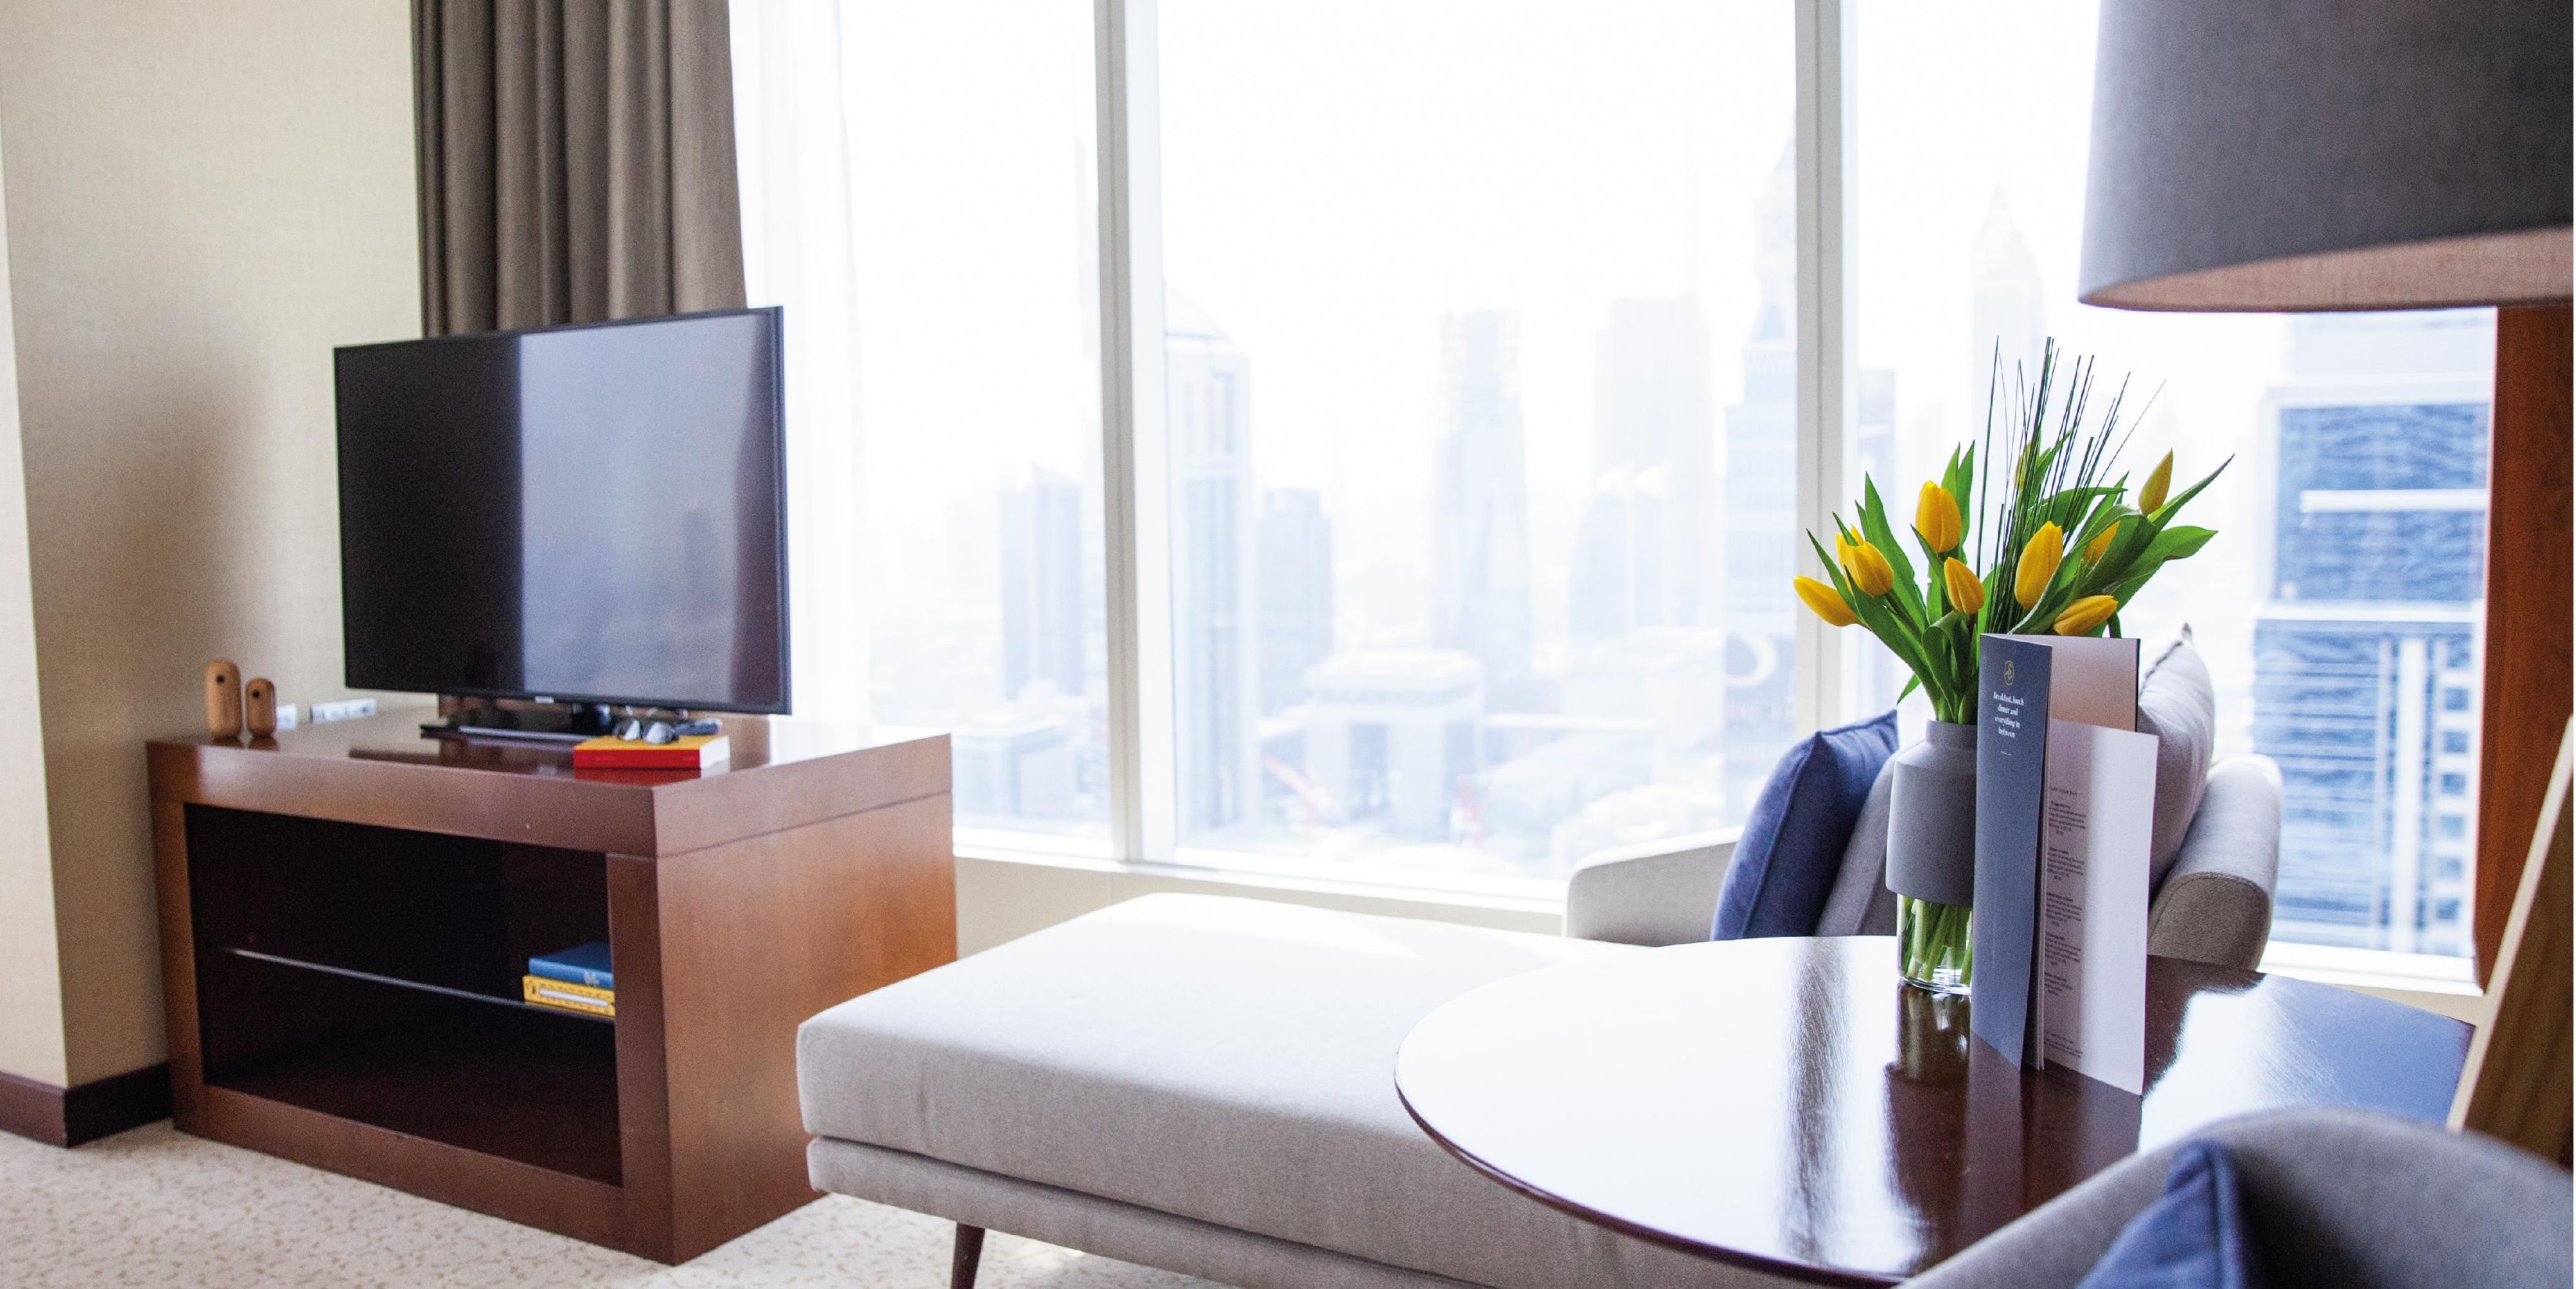 Deluxe Room, city views of Sheikh Zayed Road, Dubai